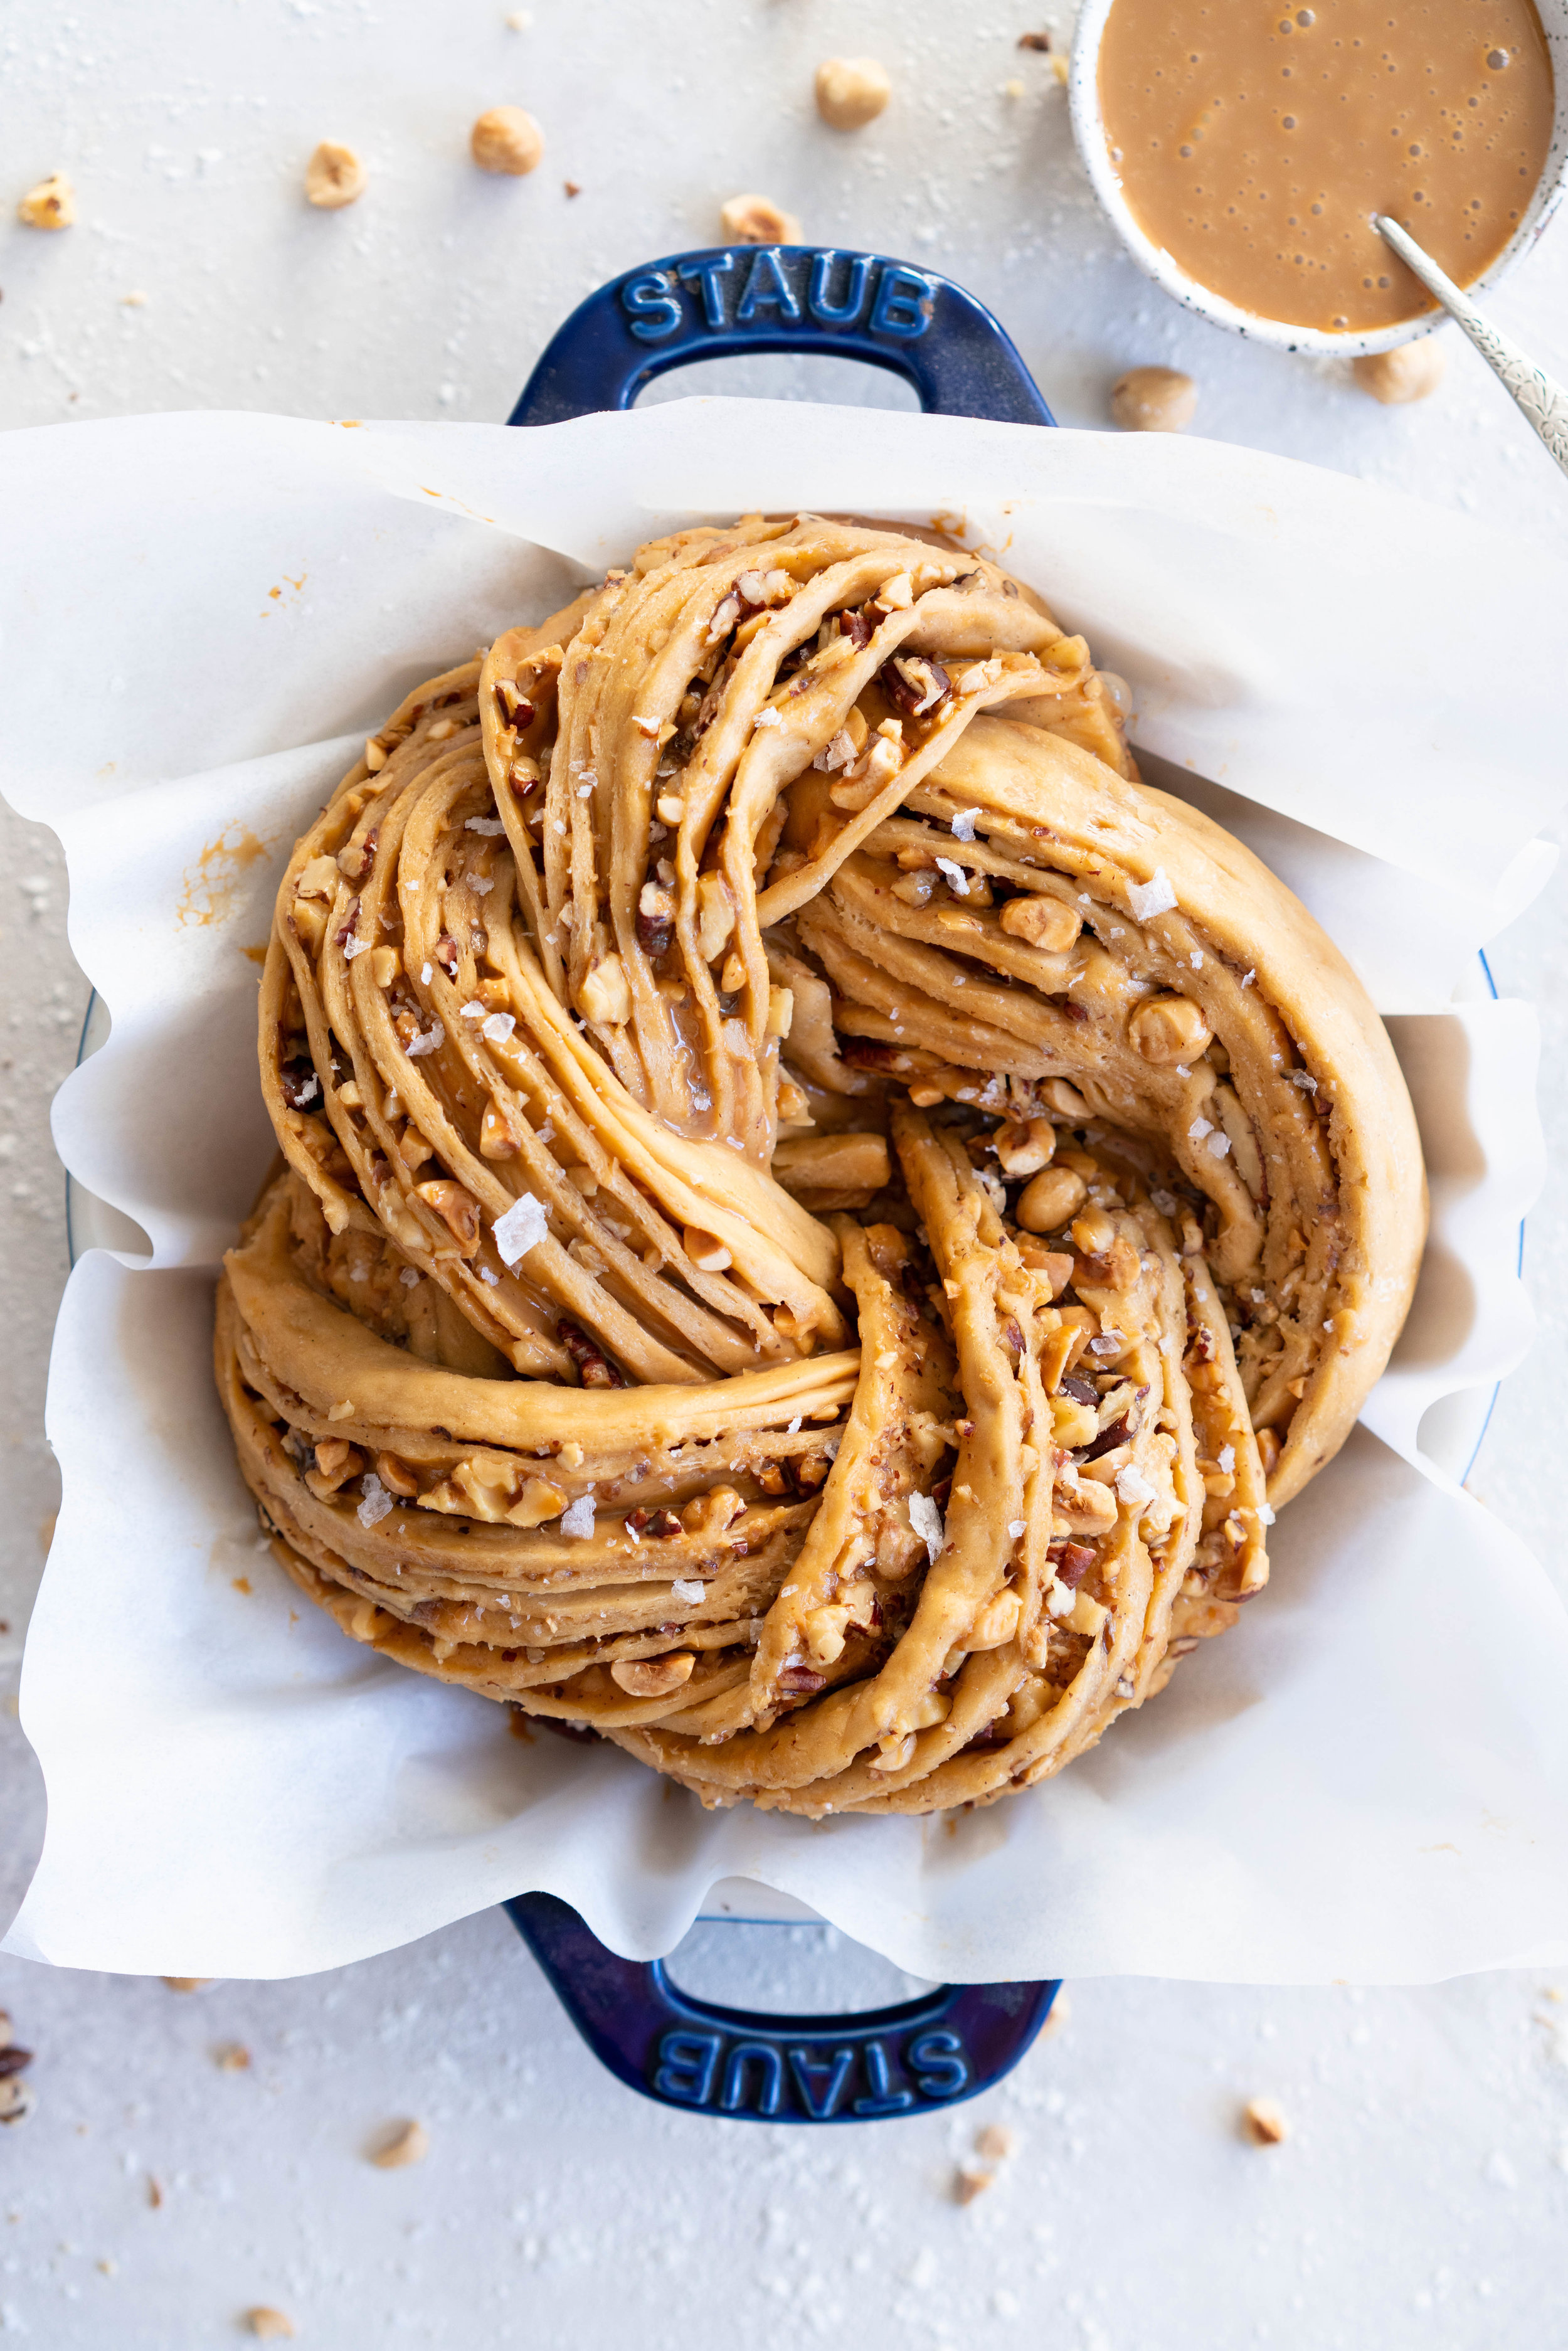 Brioche dough is spiked with vanilla bean and muscovado sugar, and spread with dulce de leche and sprinkled with mixed nuts. The finished knot is dusted with powdered sugar - the perfect christmas treat to feed a crowd.